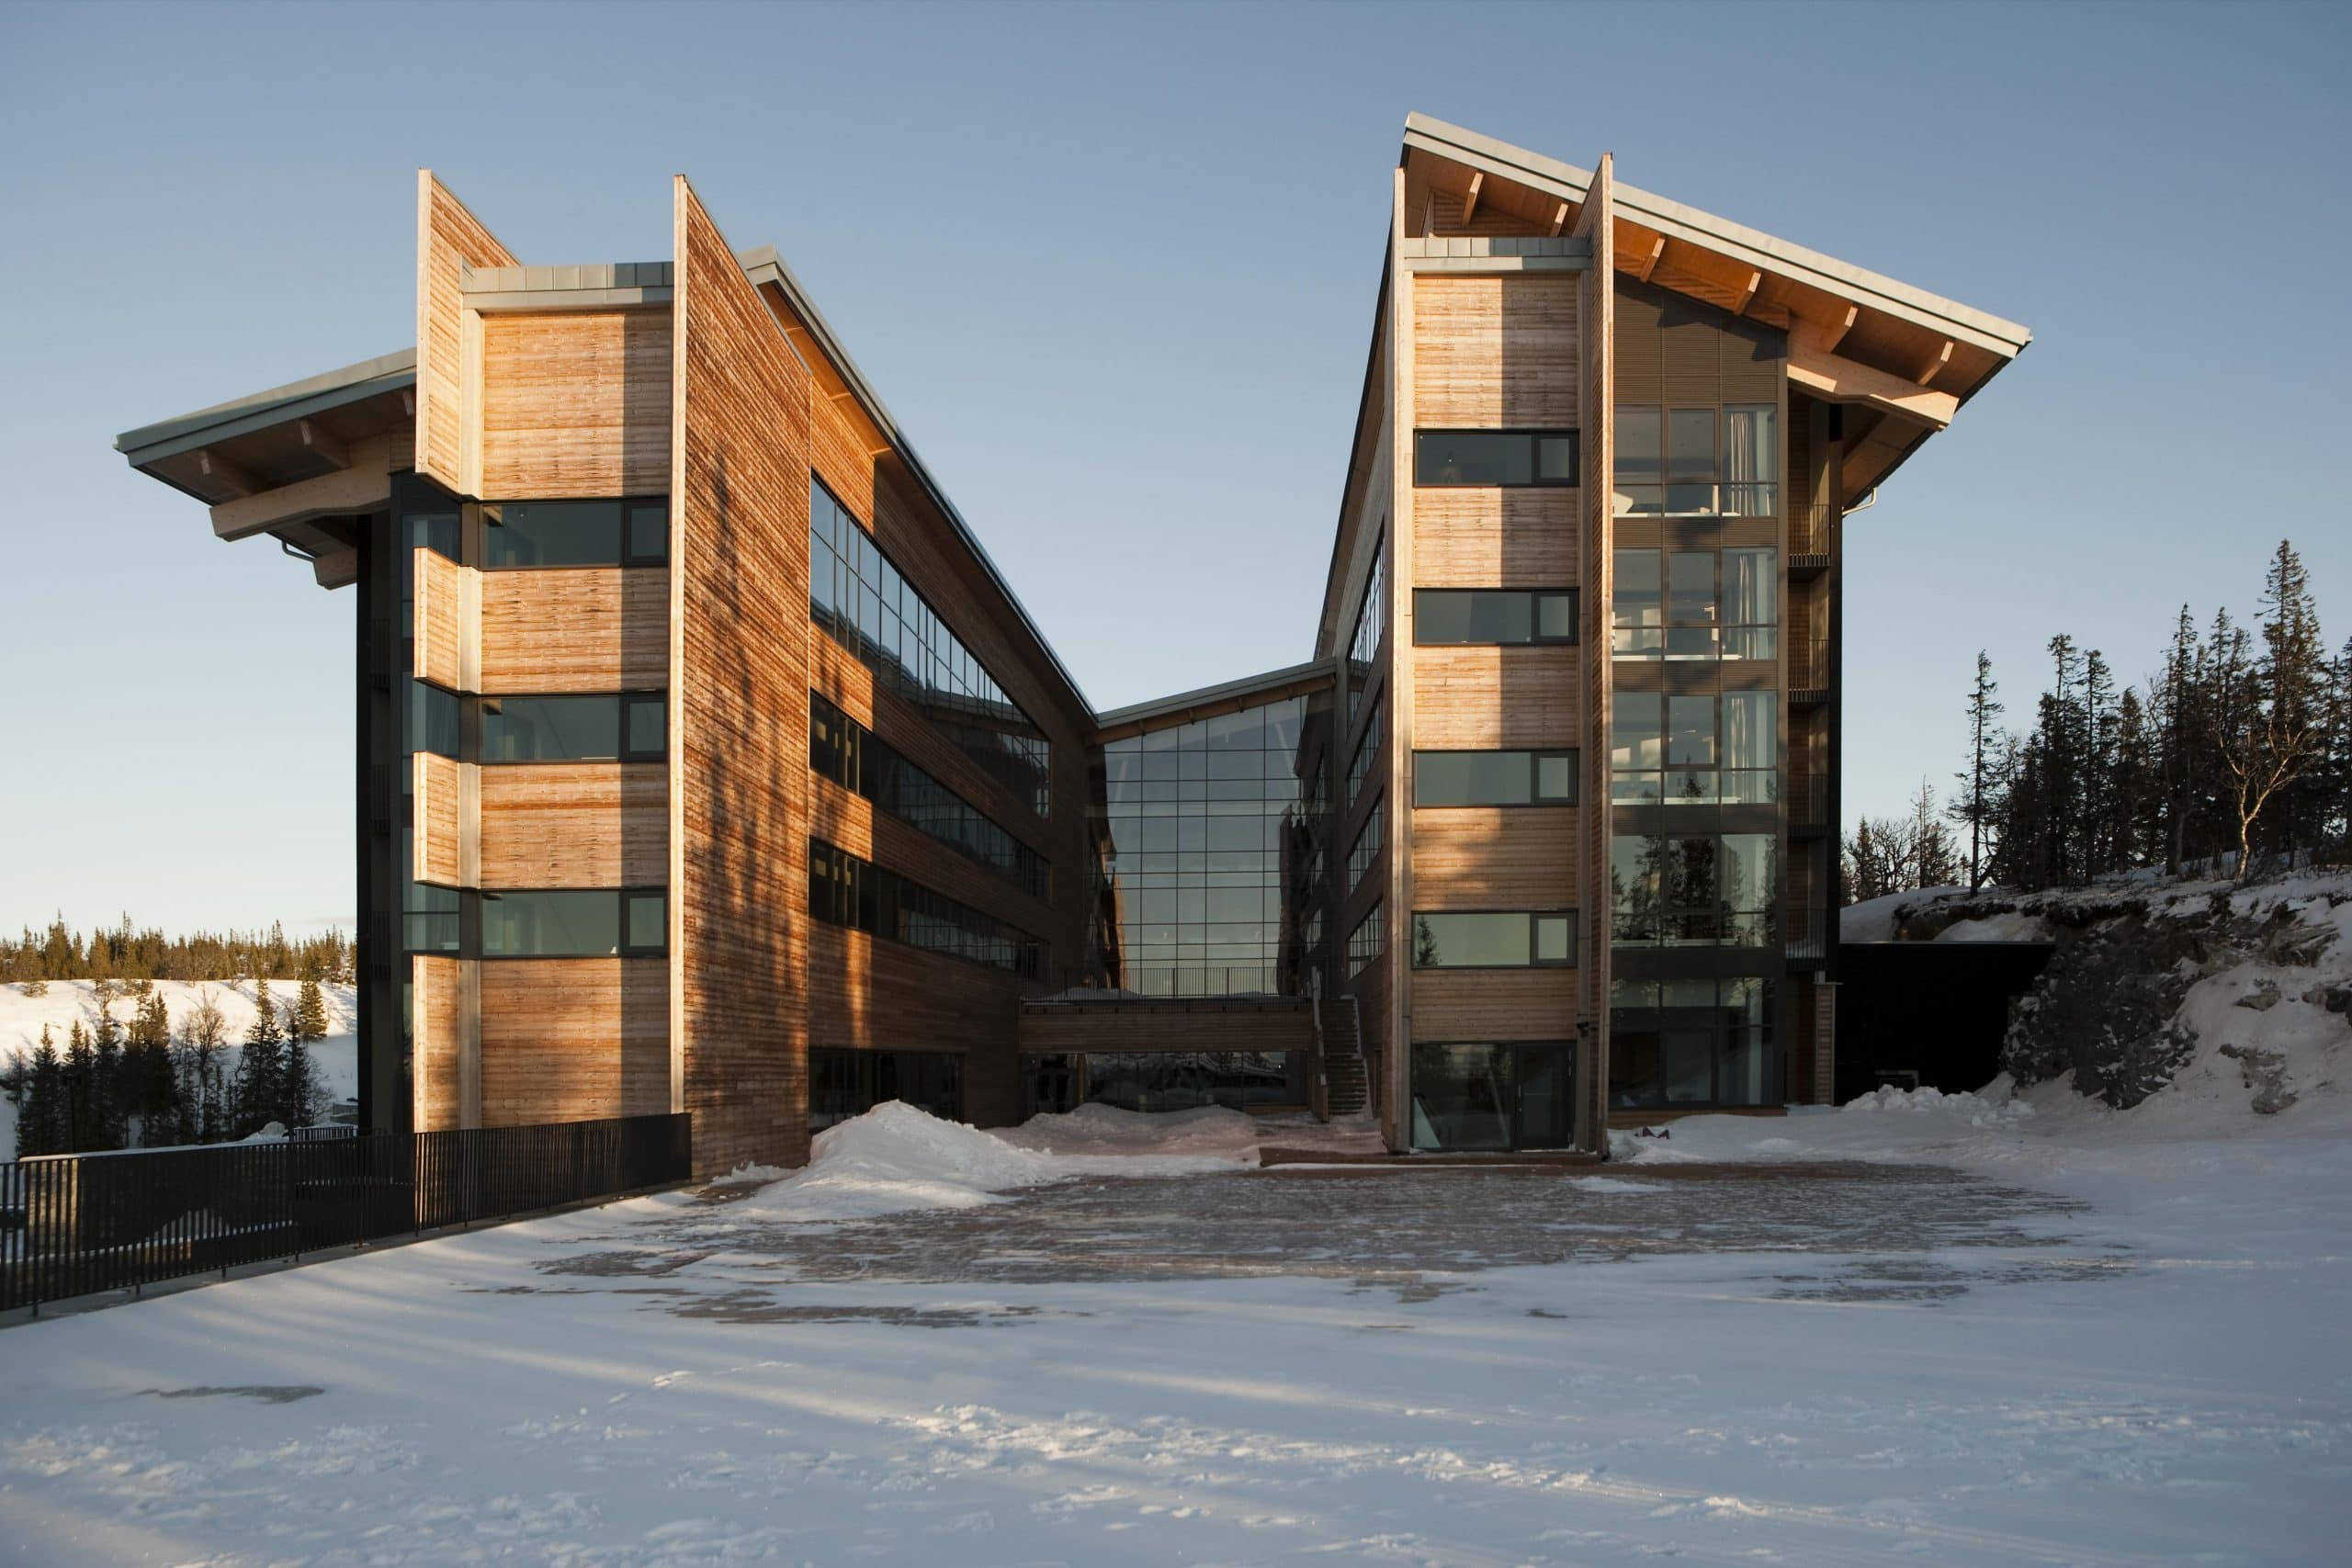 hotel that uses heated glass to prevent condensation build up and melt snow and ice